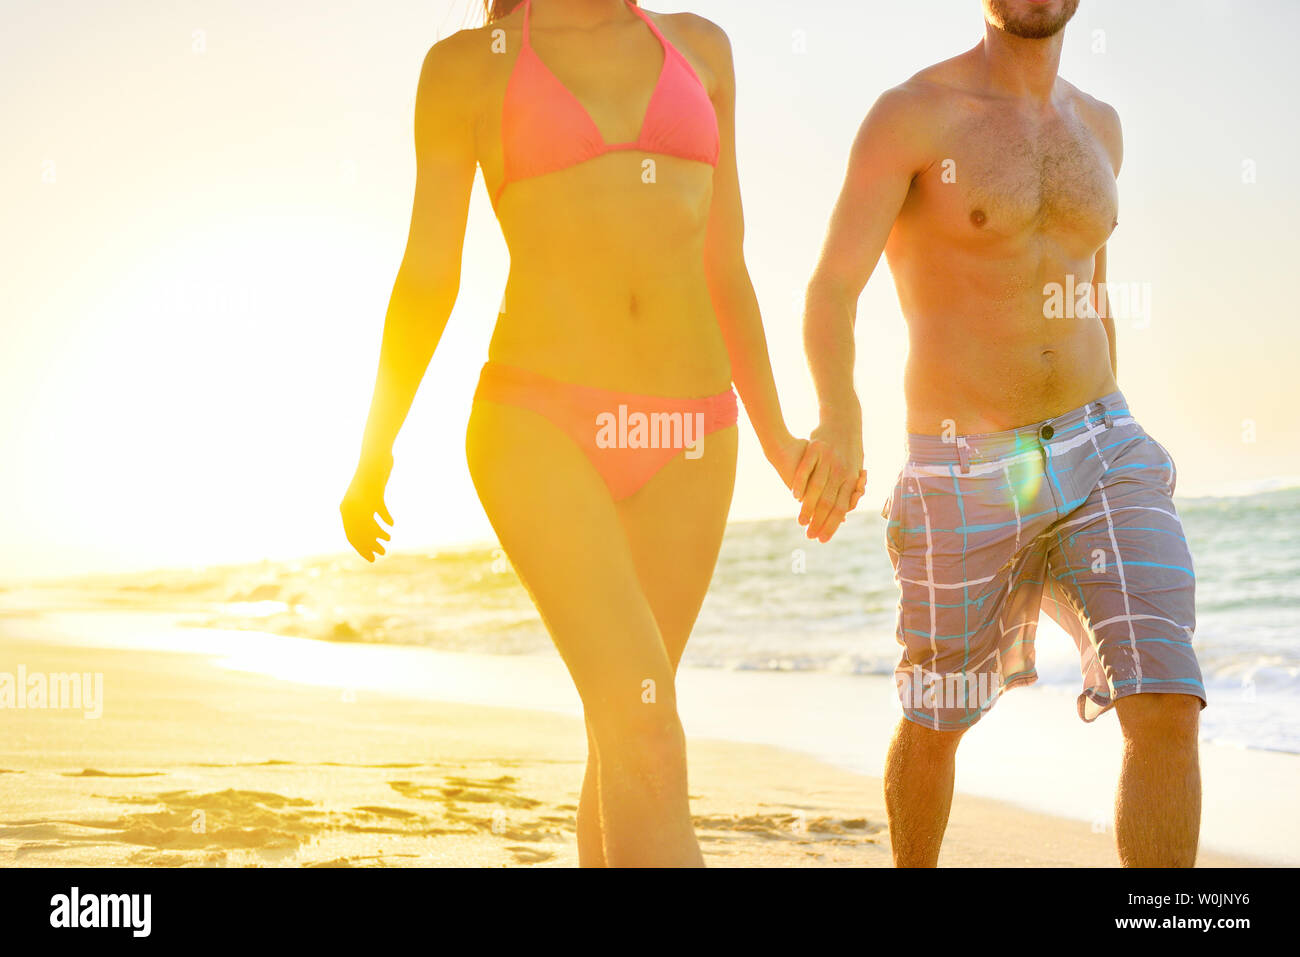 Summer beach couple romantic holding hands at sunset walking in love on honeymoon travel vacation holidays. Unrecognizable woman and man in happy romance wearing bikini and casual beachwear shorts. - Stock Image